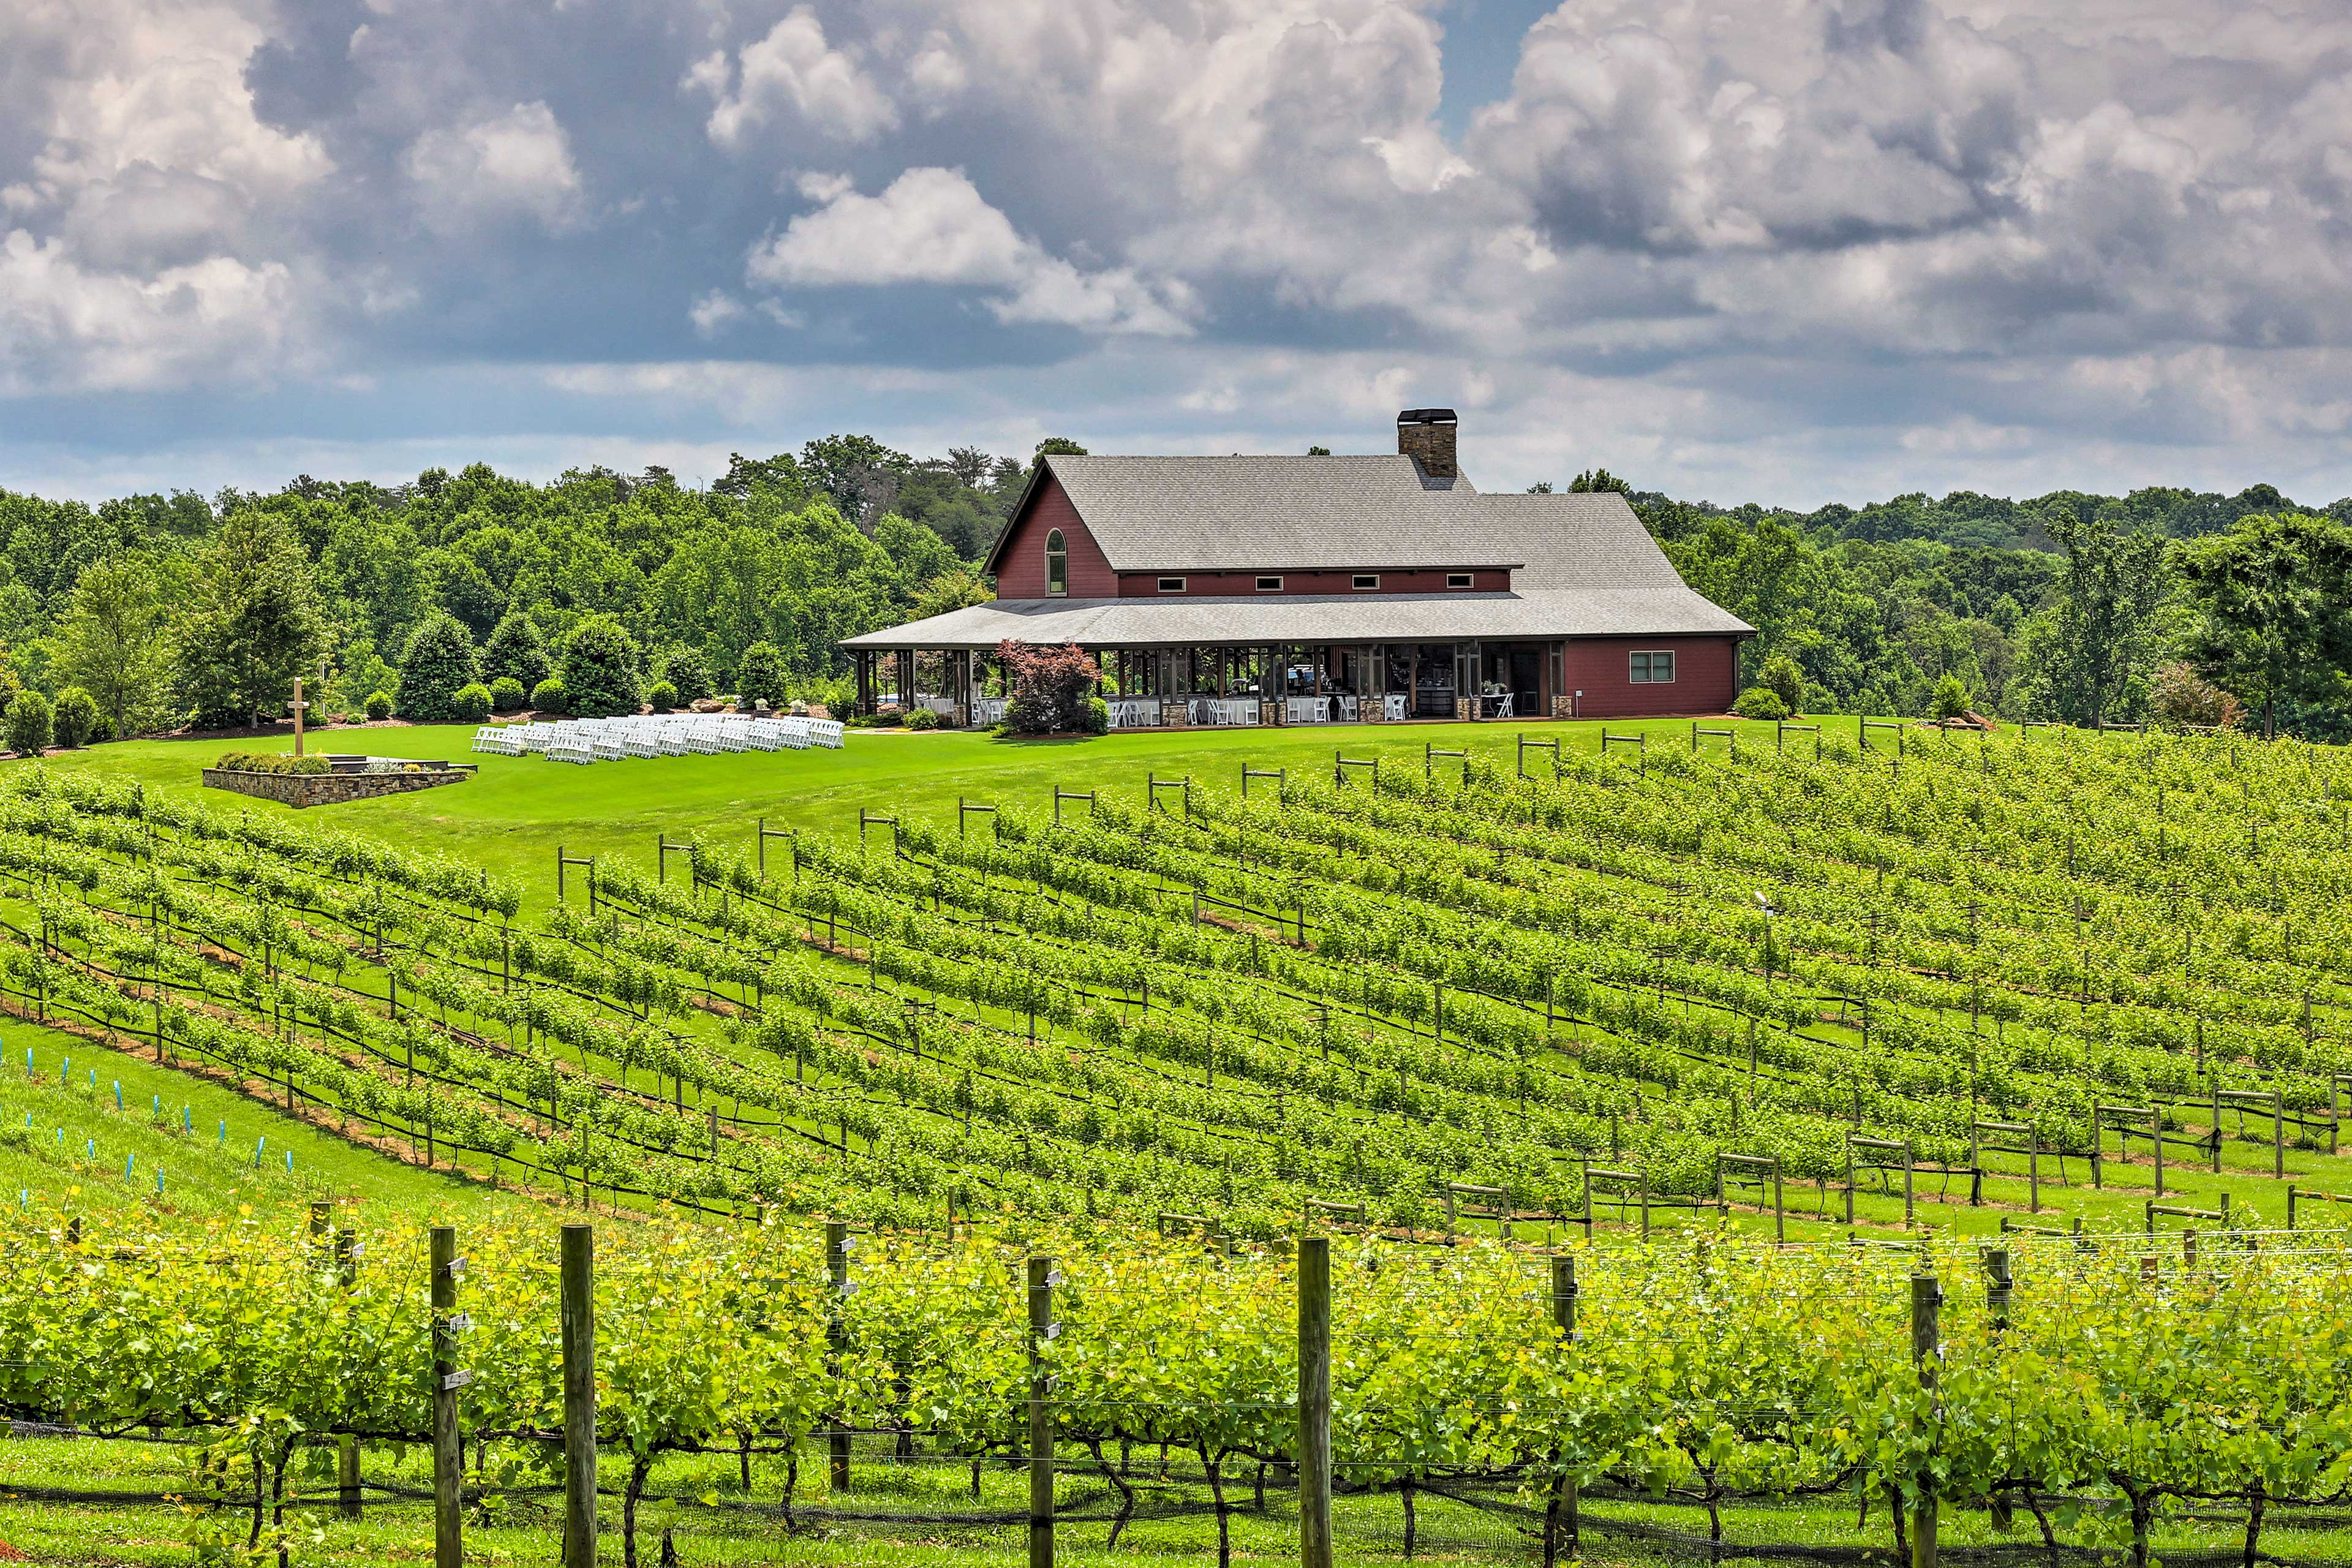 CeNita Vineyards is located minutes from the property.